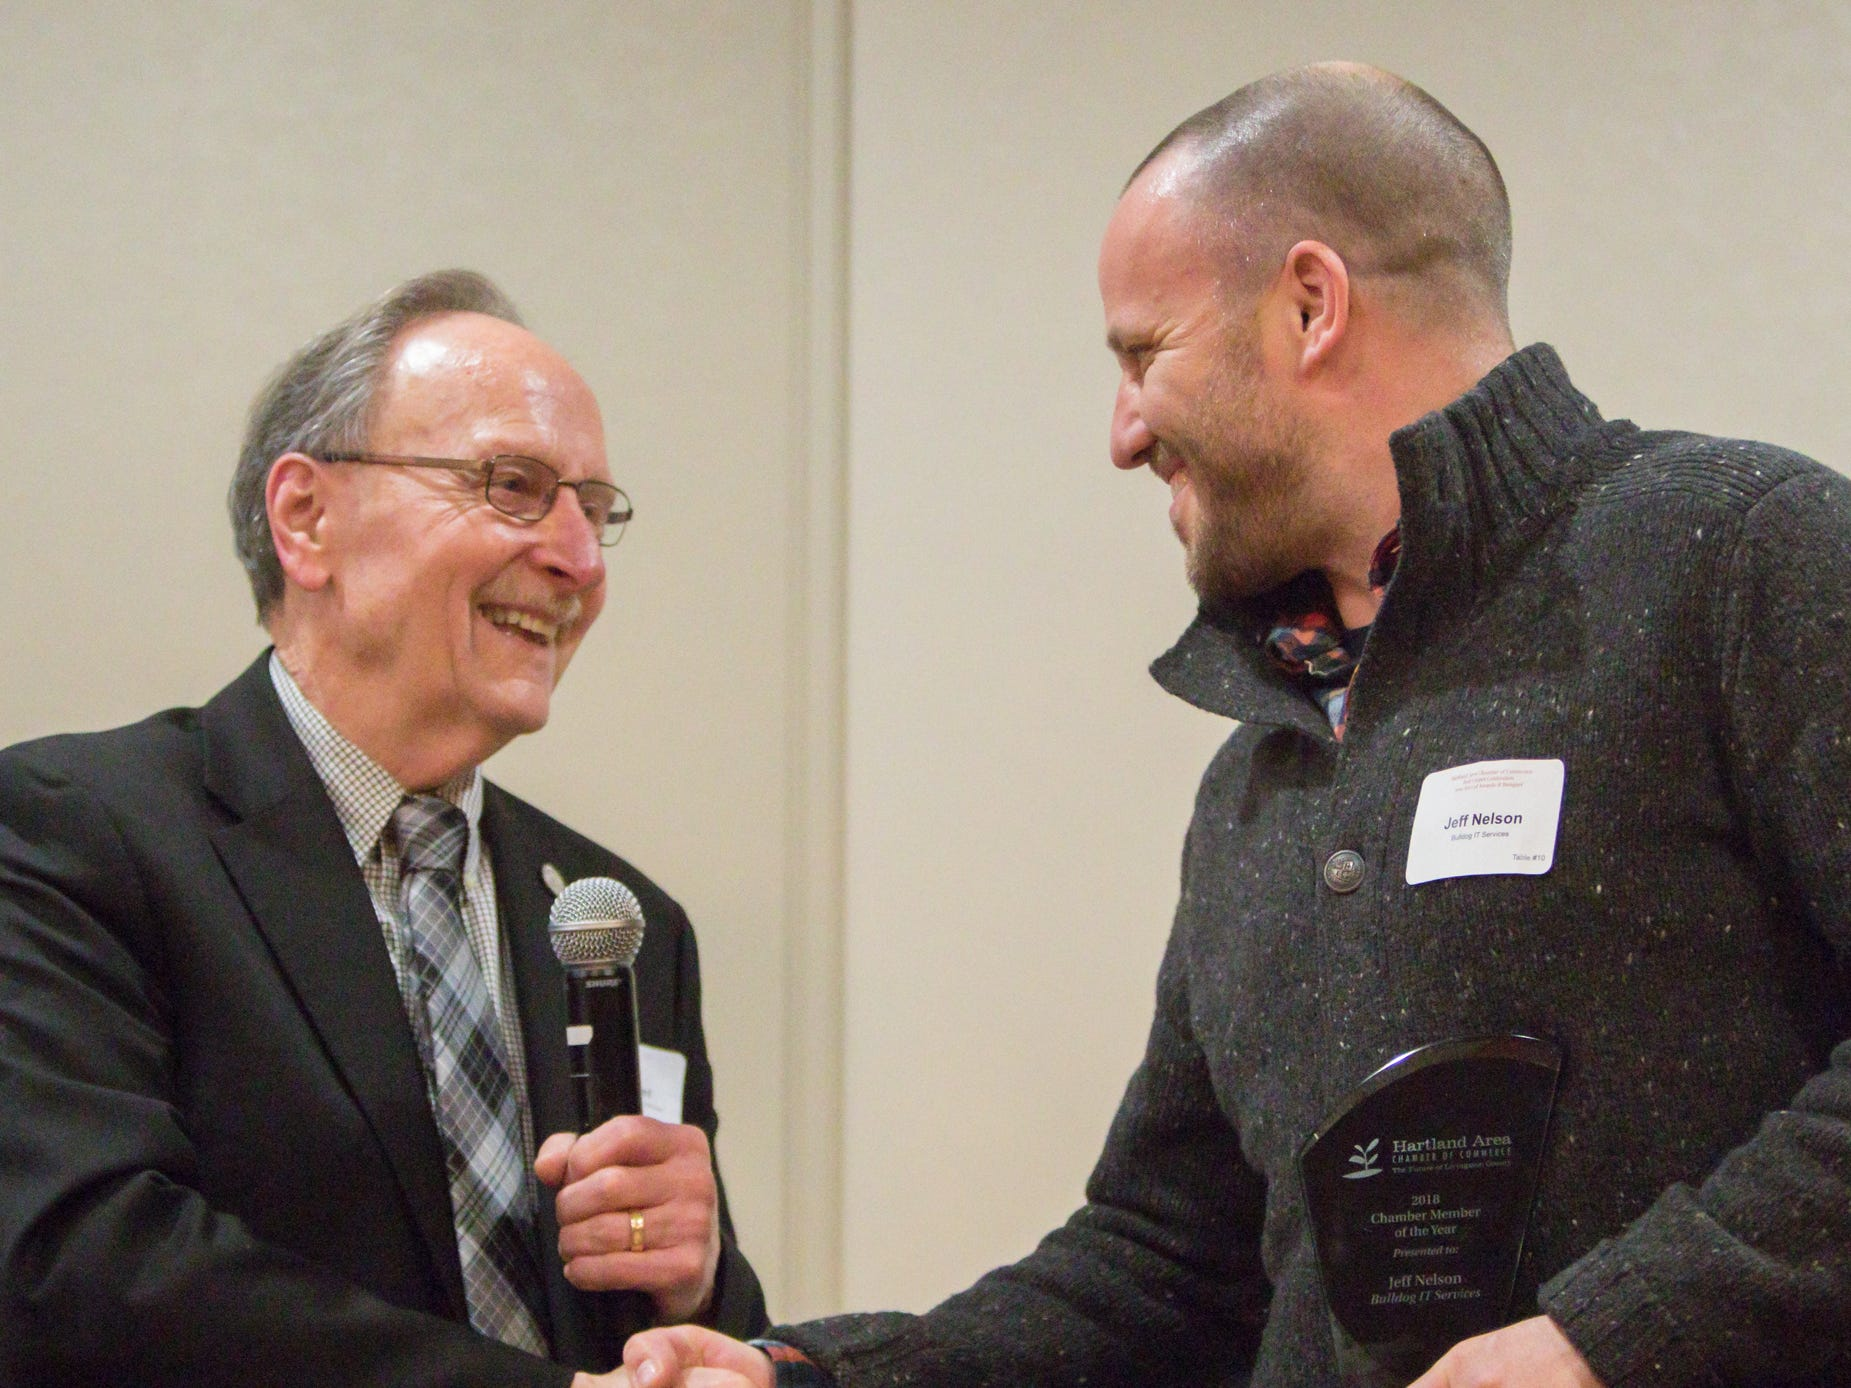 Rep. Hank Vaupel, left, congratulates Jeff Nelson of Bulldog IT Services for receiving the Chamber Member of the Year award at the chamber dinner Thursday, Jan. 31, 2019.